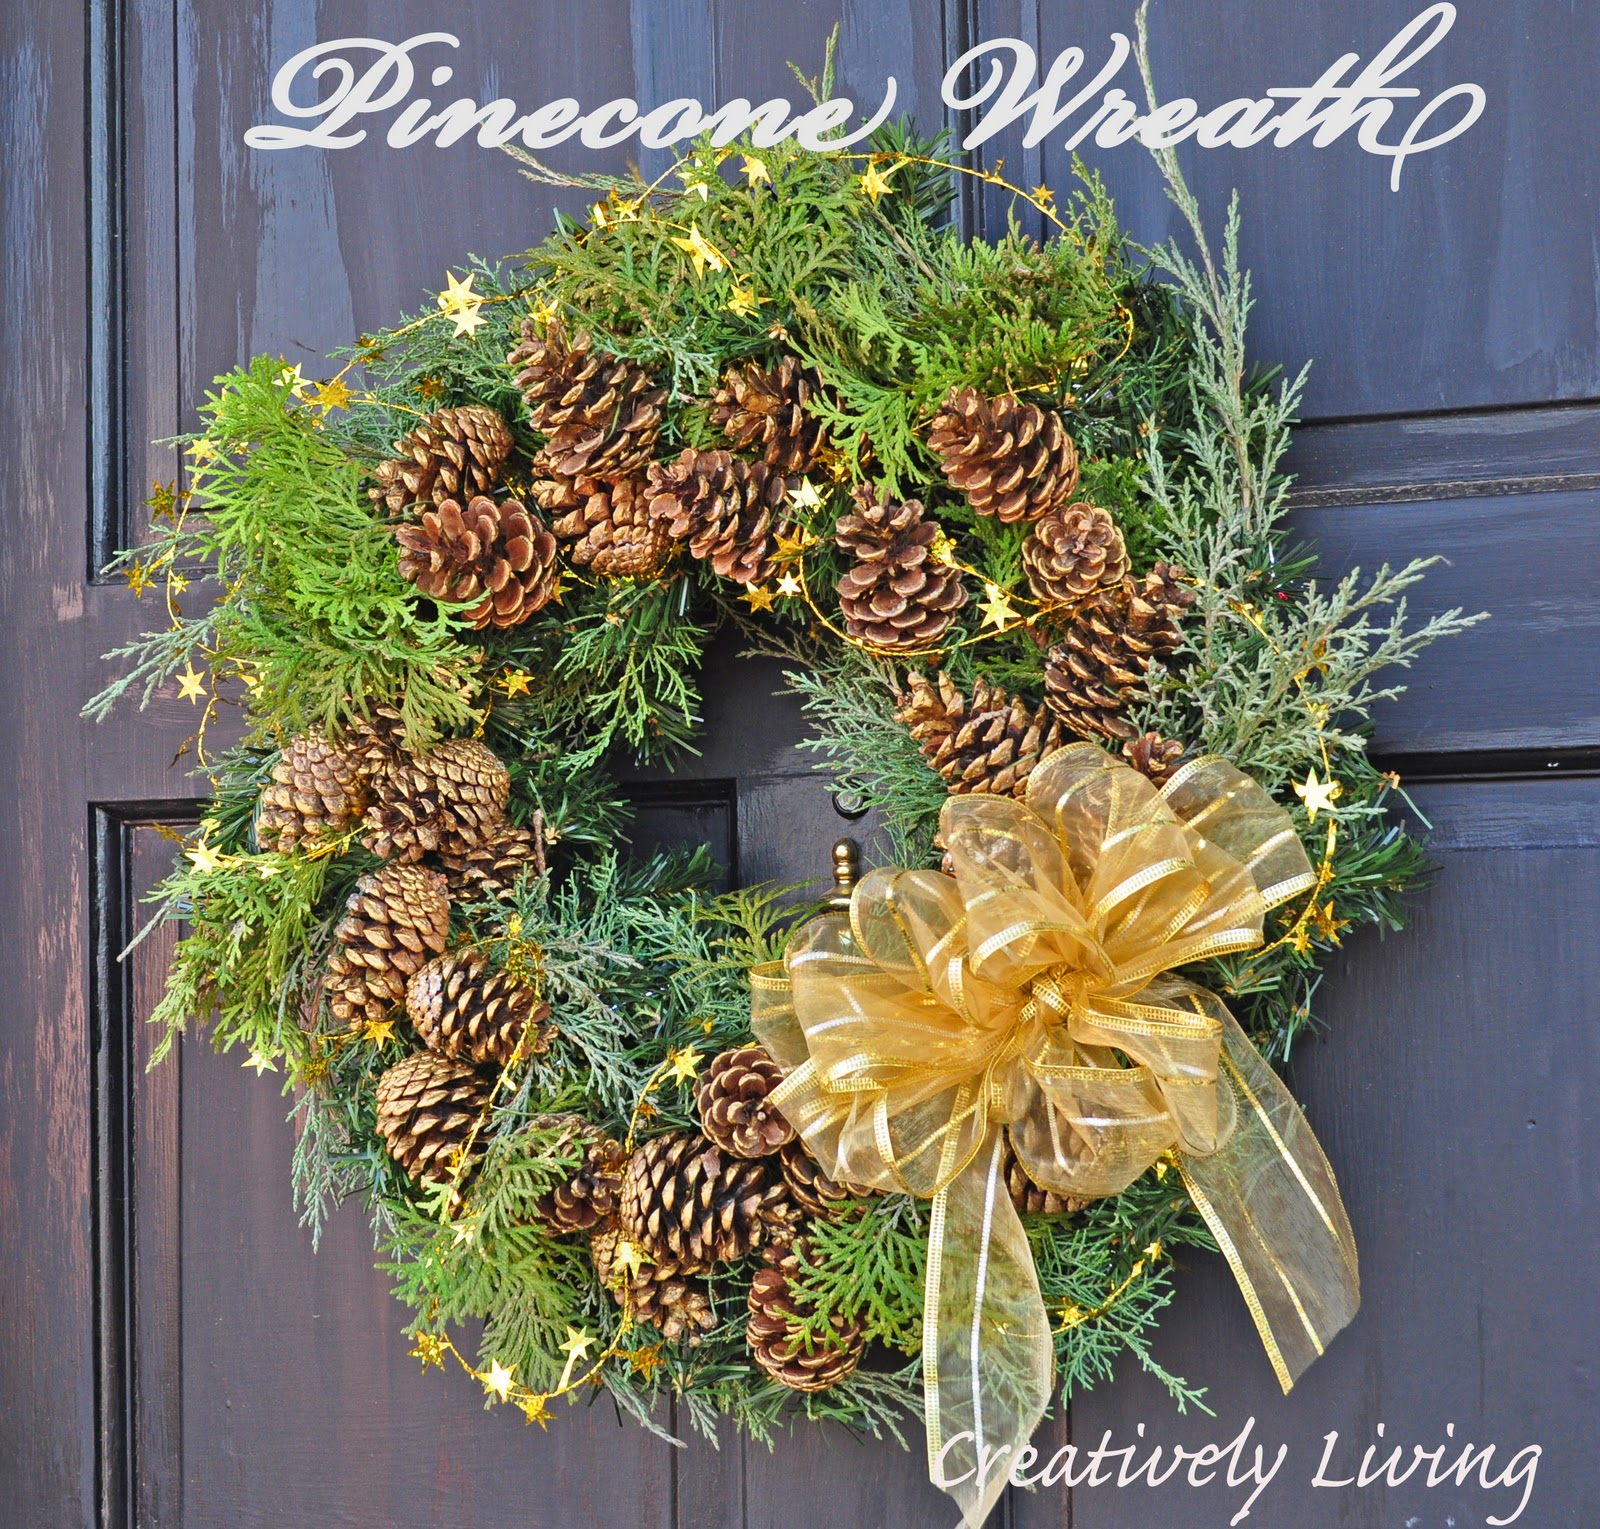 How to make real christmas wreaths -  I Used A Wreath I Had At Home And Already Had The Paint And Glitter If You Had To Purchase Everything I Think You Could Make It For Under 10